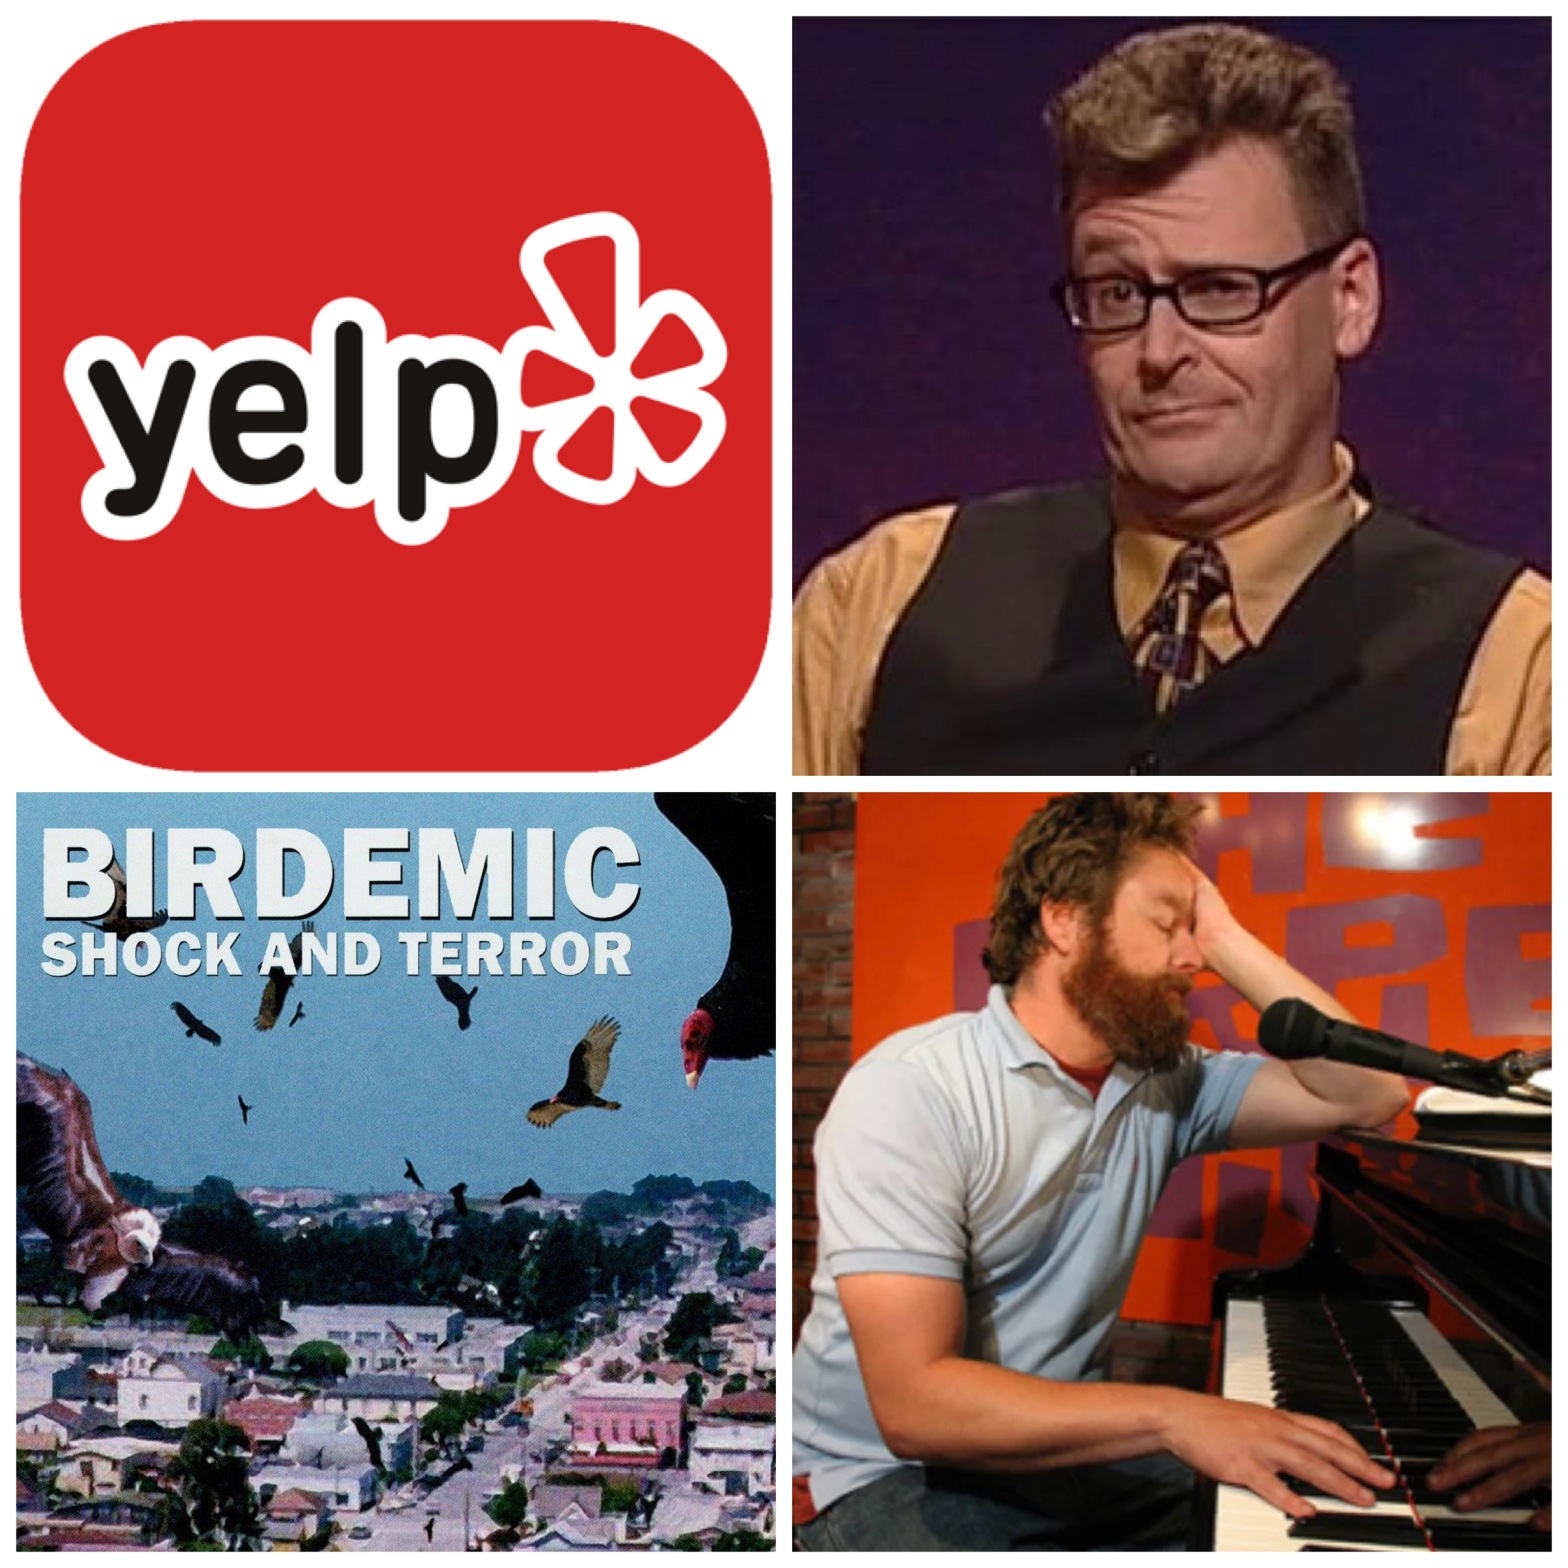 Yelp, Greg Proops on Whose Line is it Anyway, Birdemic, and Zach Galifianakis playing the piano.